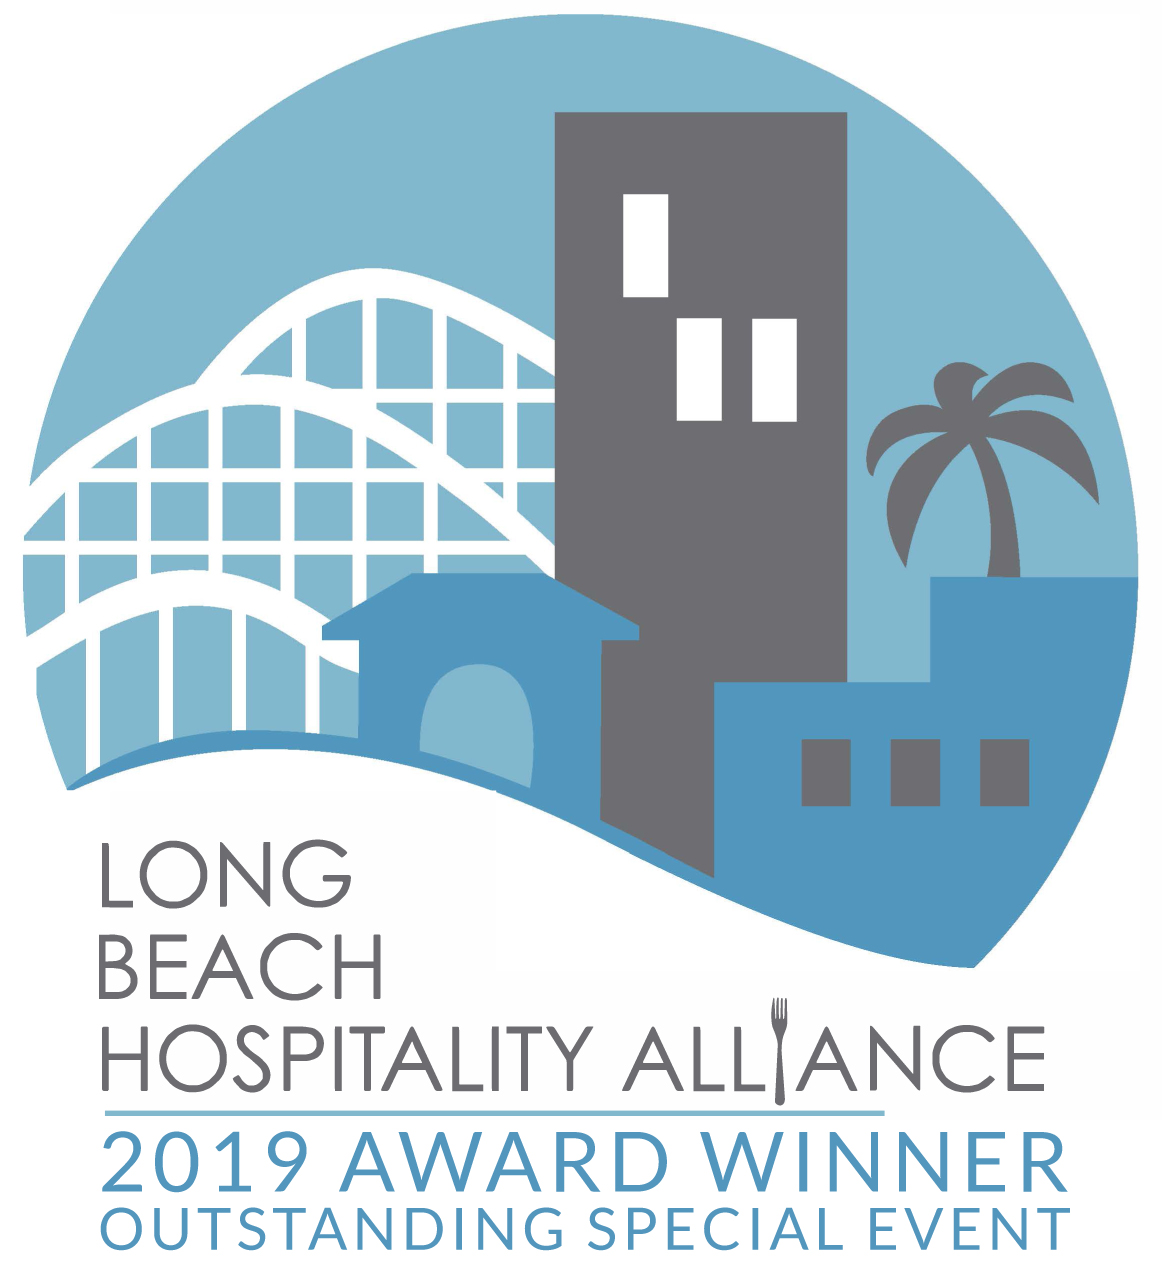 Long Beach Hospitality Alliance - 2019 Award Winner - outstanding special event